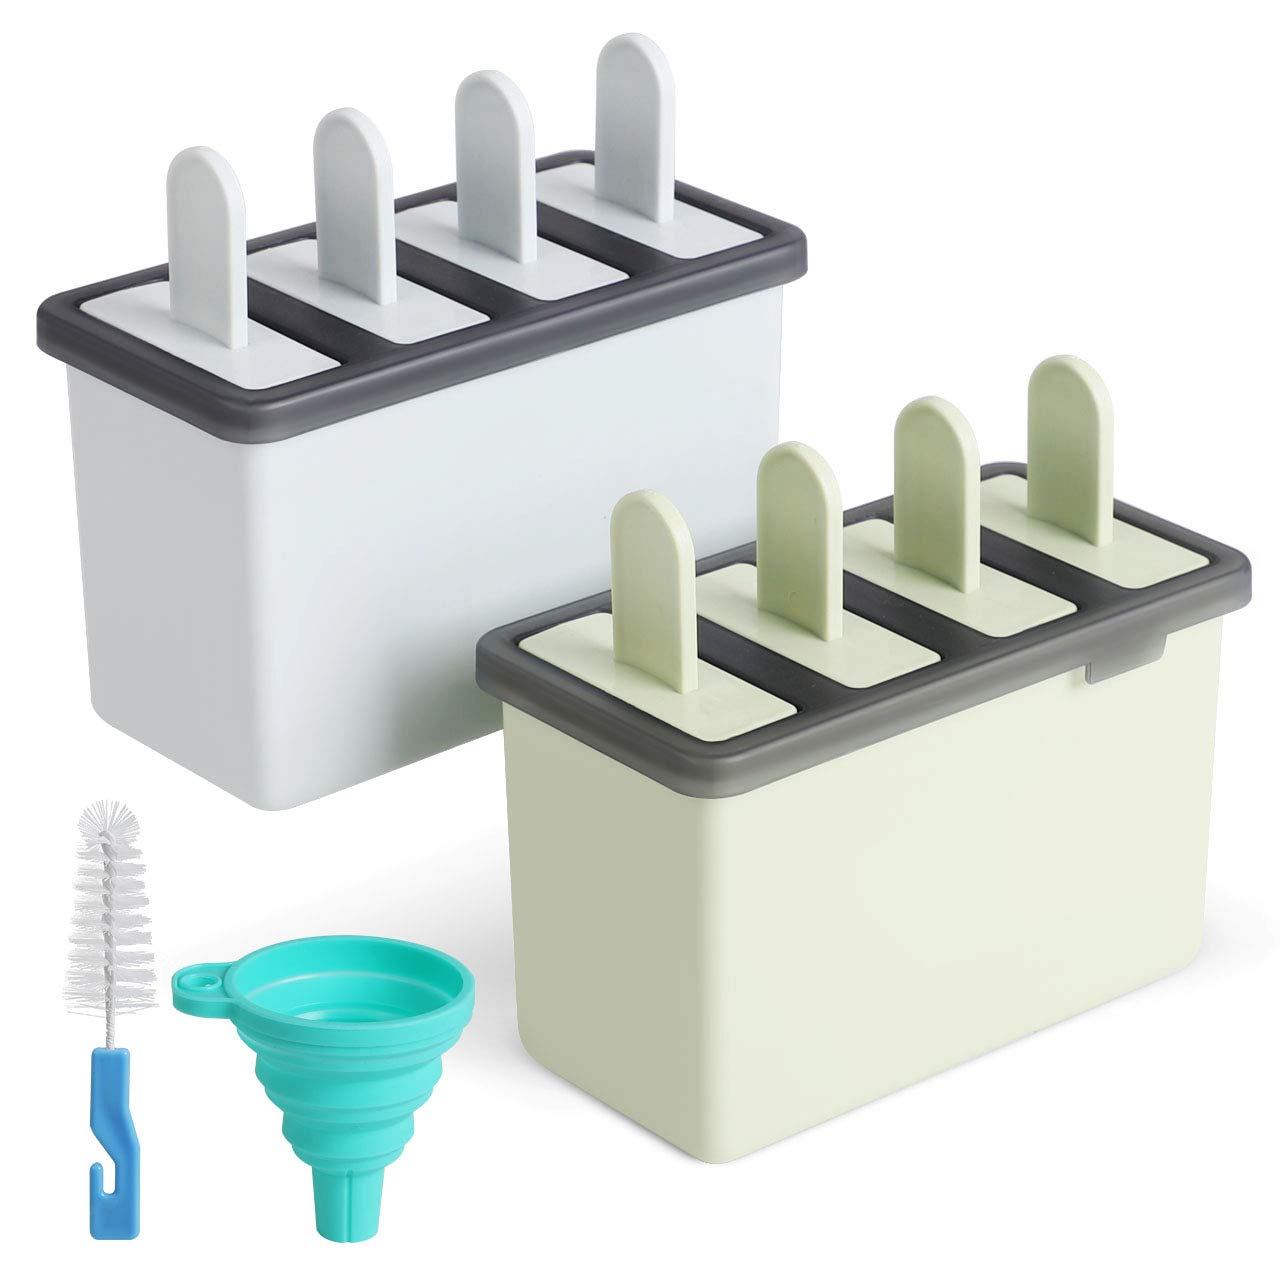 Kootek Popsicle Molds Sets 8 Ice Pop Makers Reusable Ice Cream Mold - BPA Free, Dishwasher Safe, Durable DIY Popsicles Tray Holders with Silicone Funnel, Cleaning Brush Kitchen Supplies(Blue & Green)